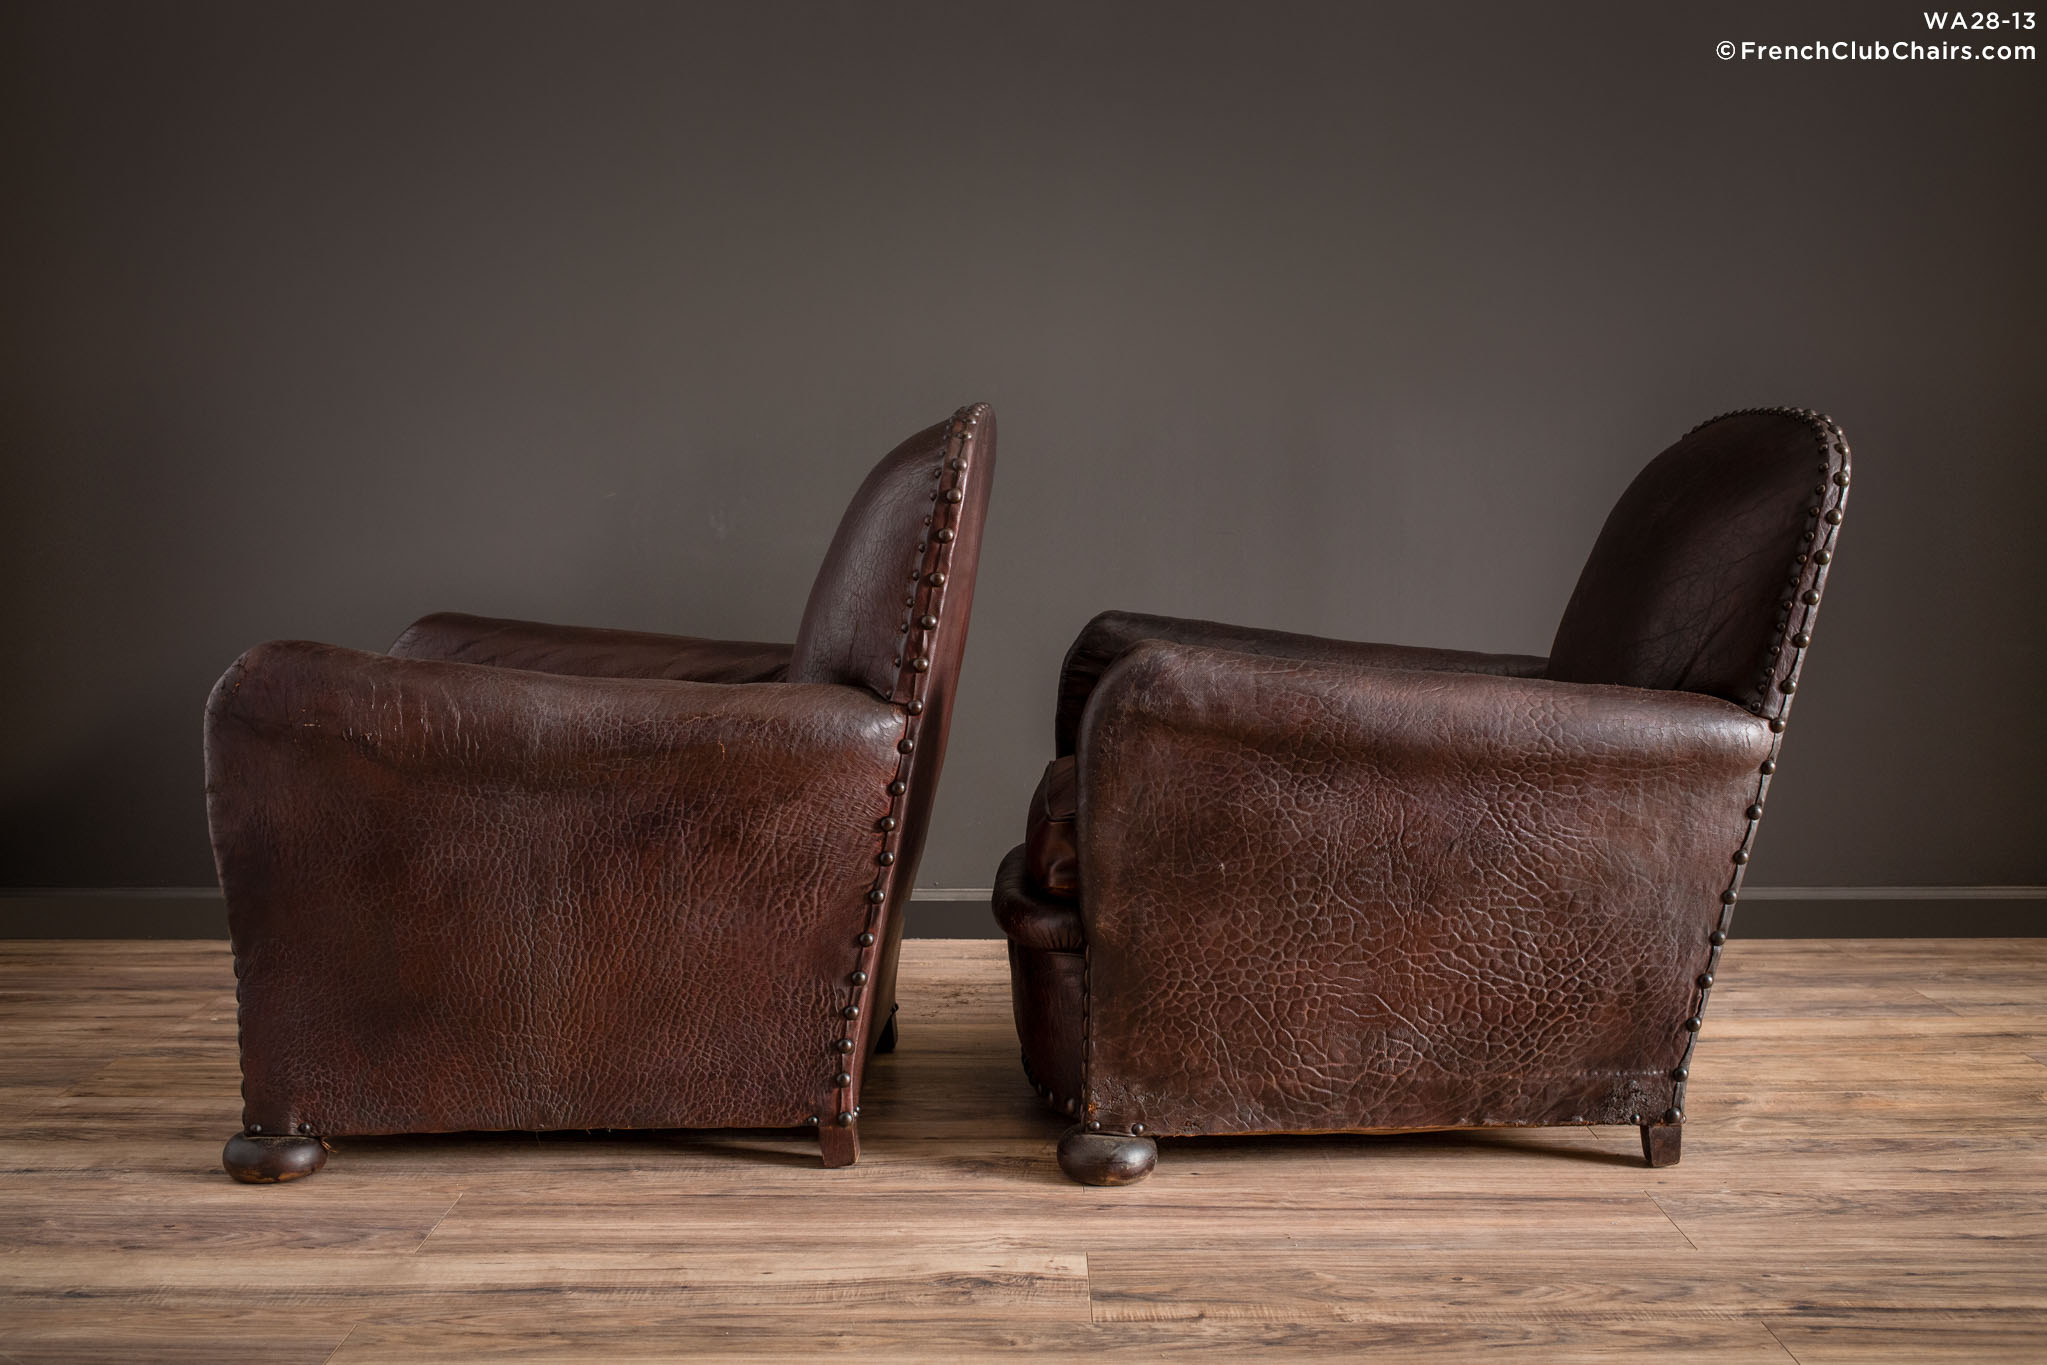 WA_28-13_St_Imoge_Cinema_Nailhead_Pair_R_4LT1-williams-antiks-leather-french-club-chair-wa_fcccom